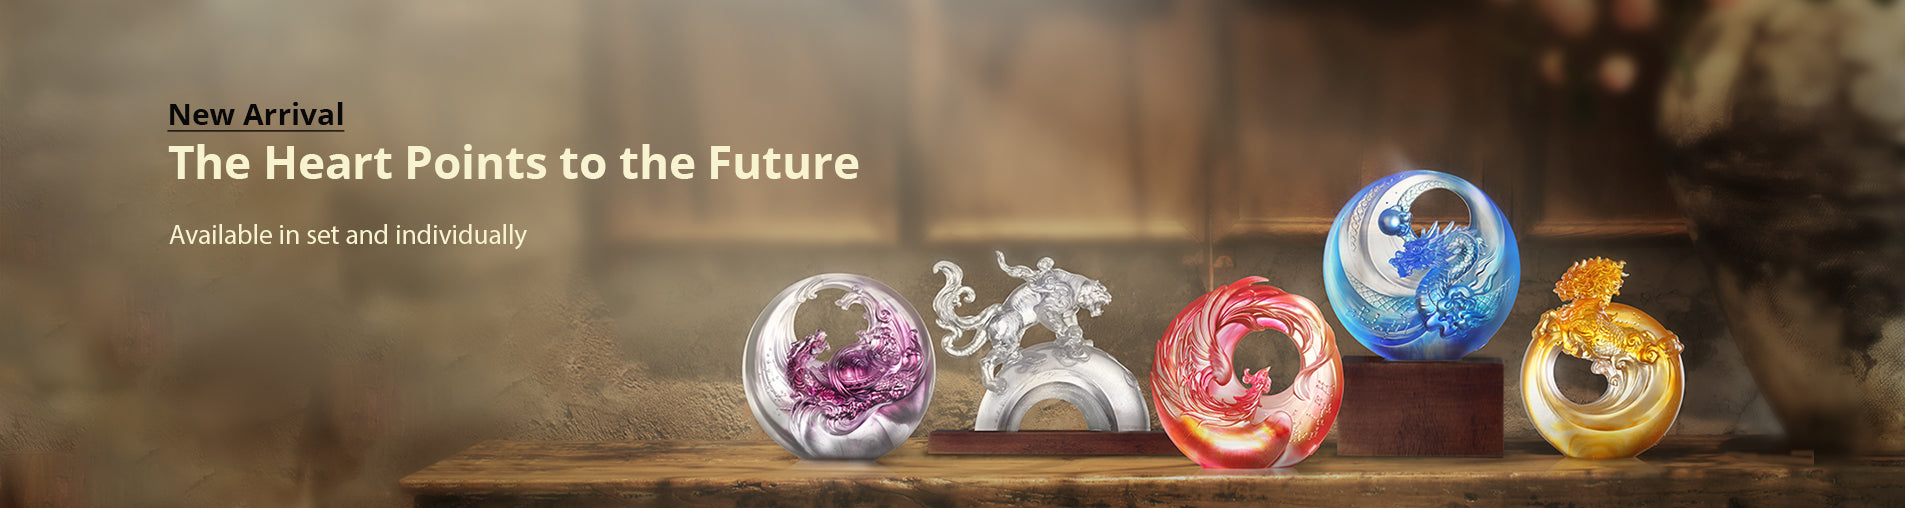 Mythical Creature Exhibition From Liuli Crystal Art